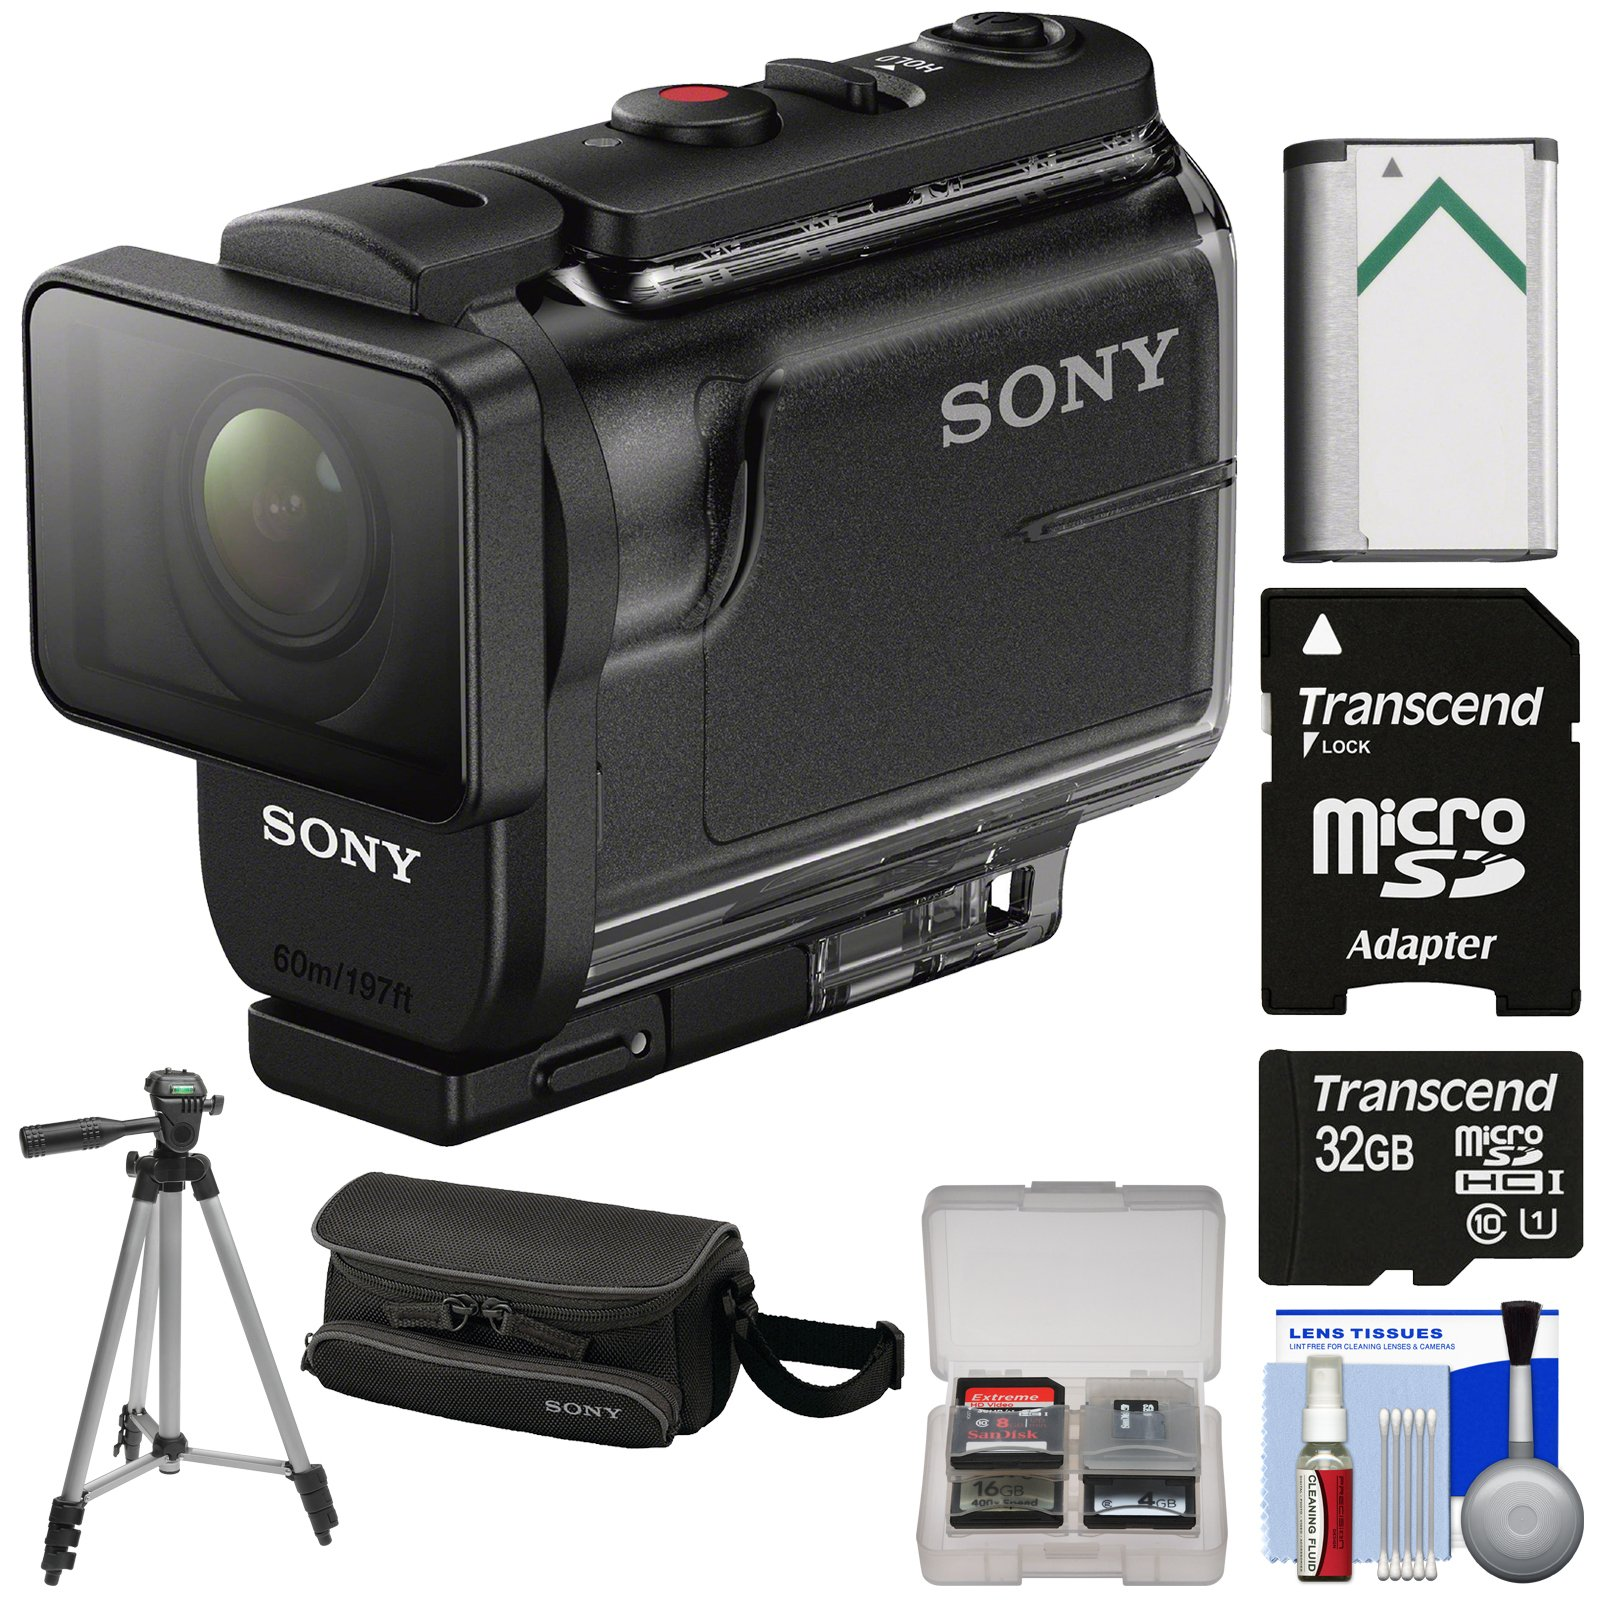 Sony Action Cam HDR-AS50 Wi-Fi HD Video Camera Camcorder with 32GB Card + Battery + Case + Tripod + Kit by Sony